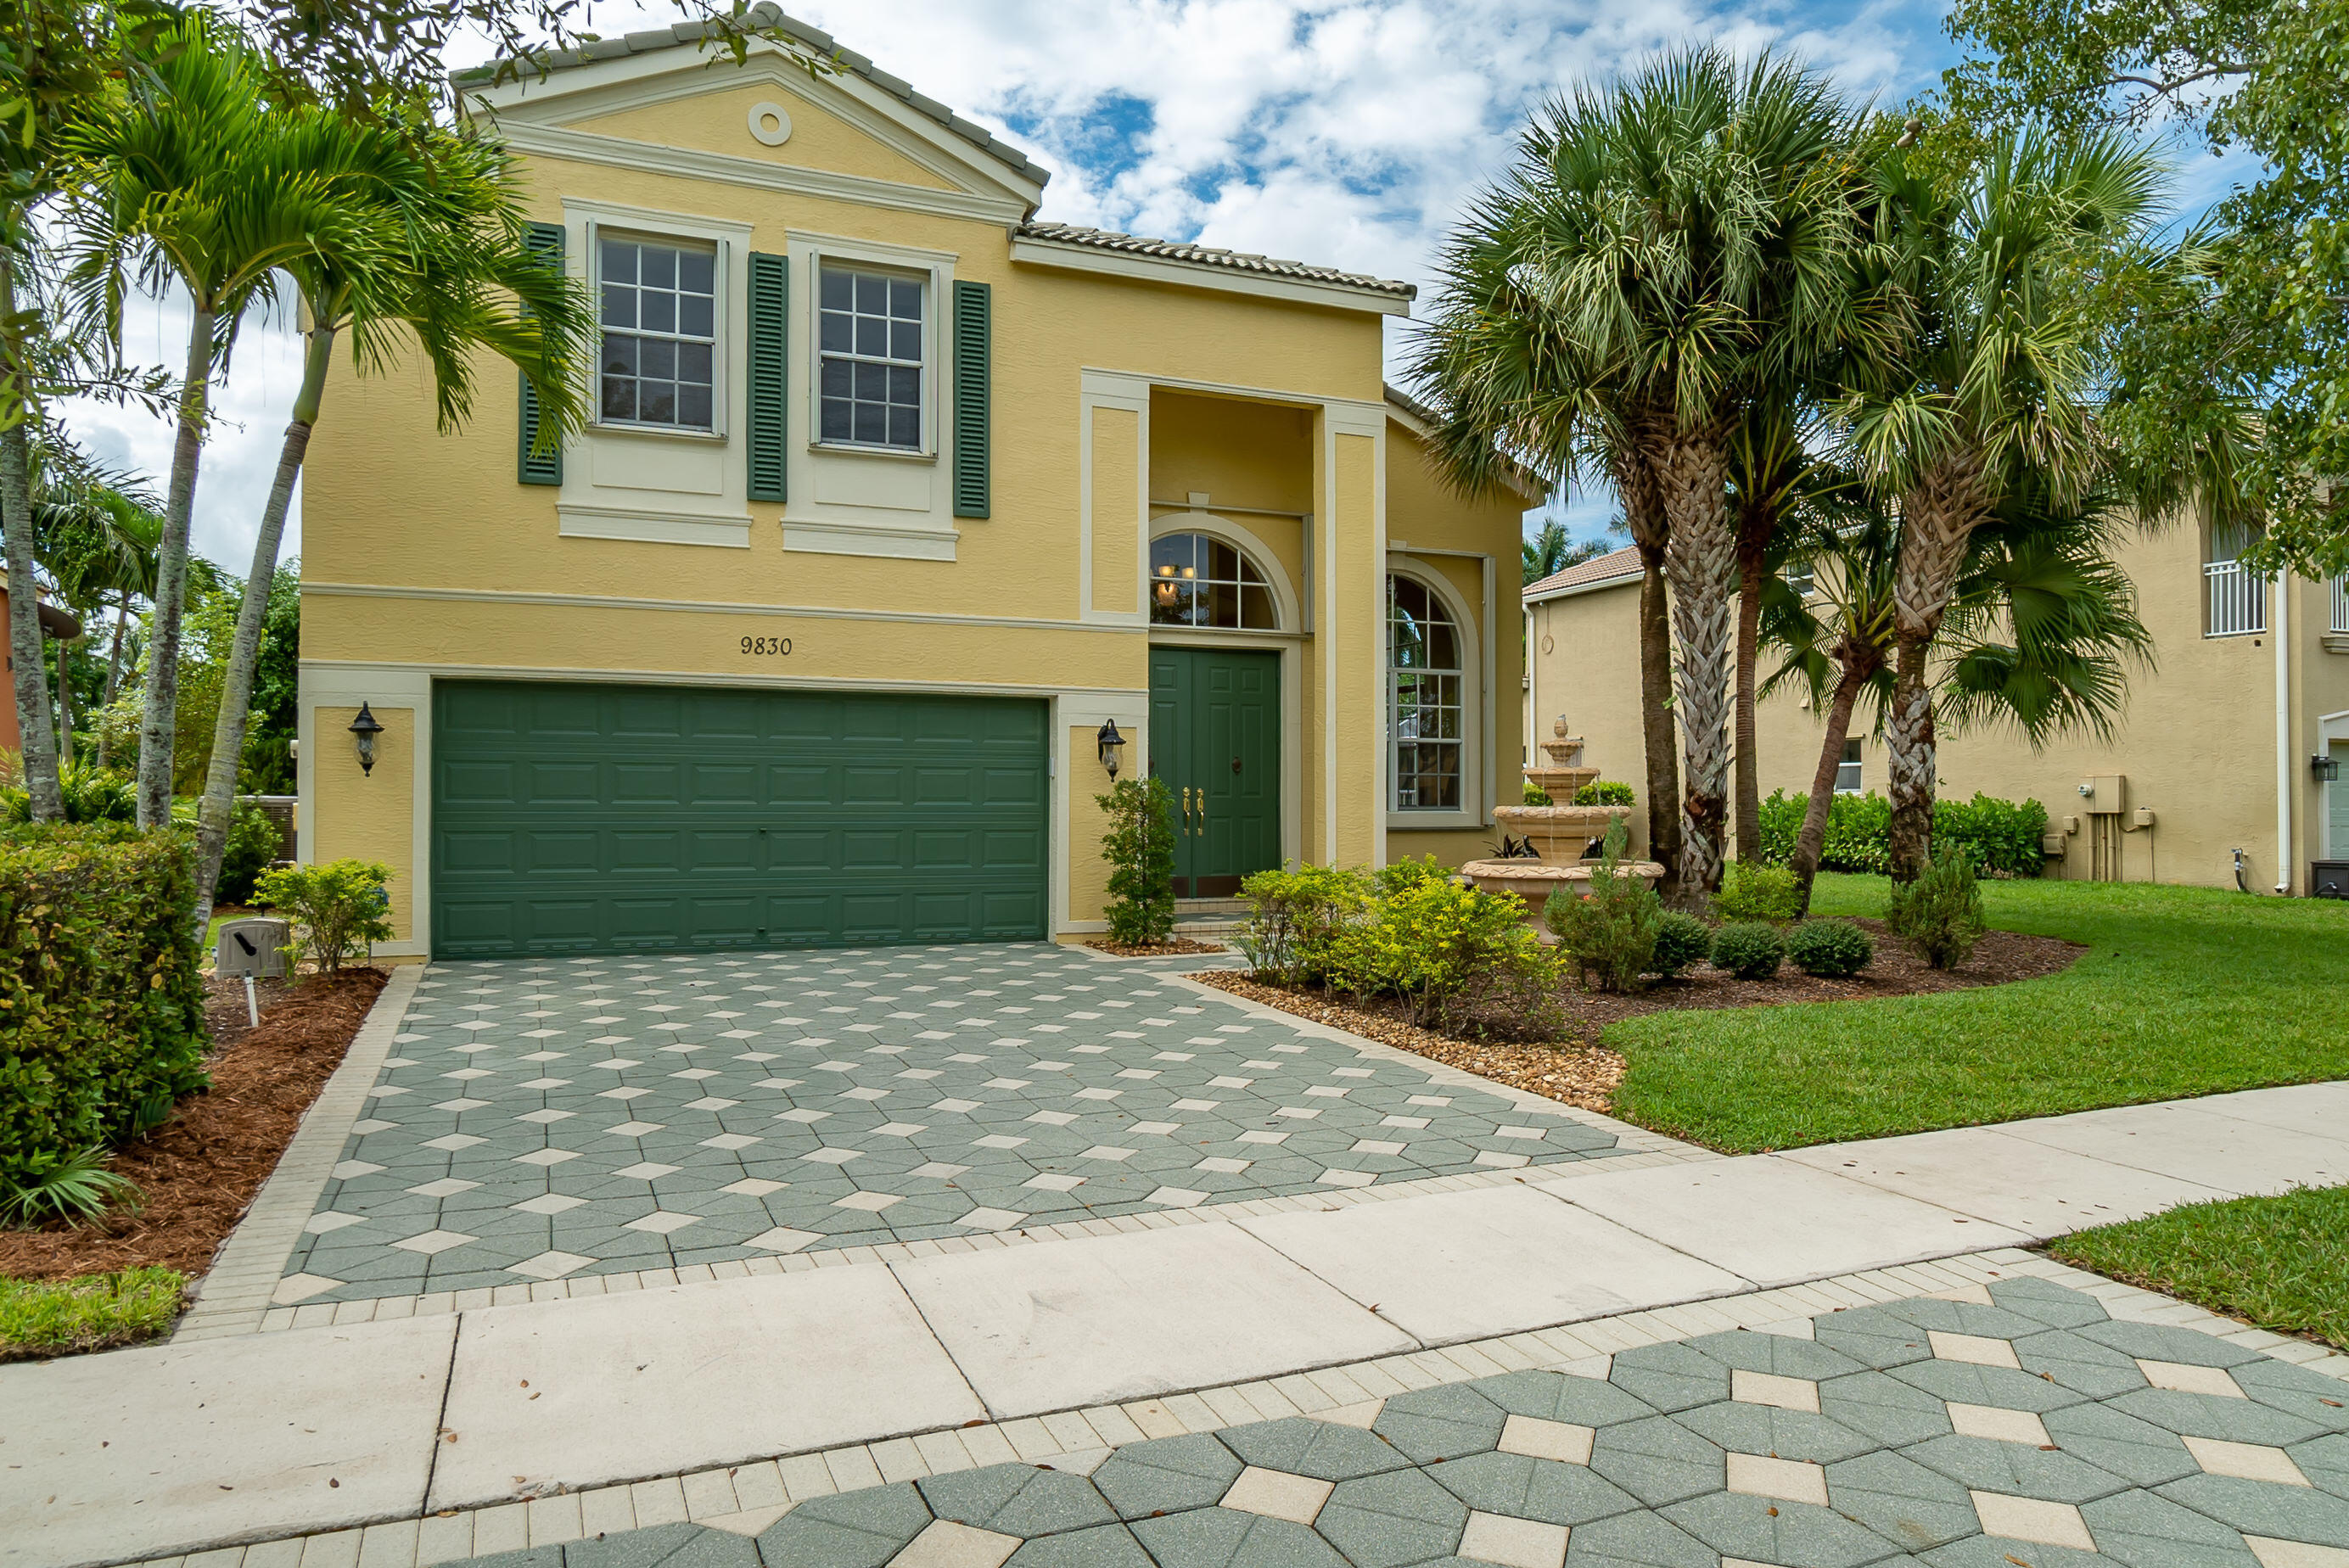 9830  Shepard Place  For Sale 10751183, FL